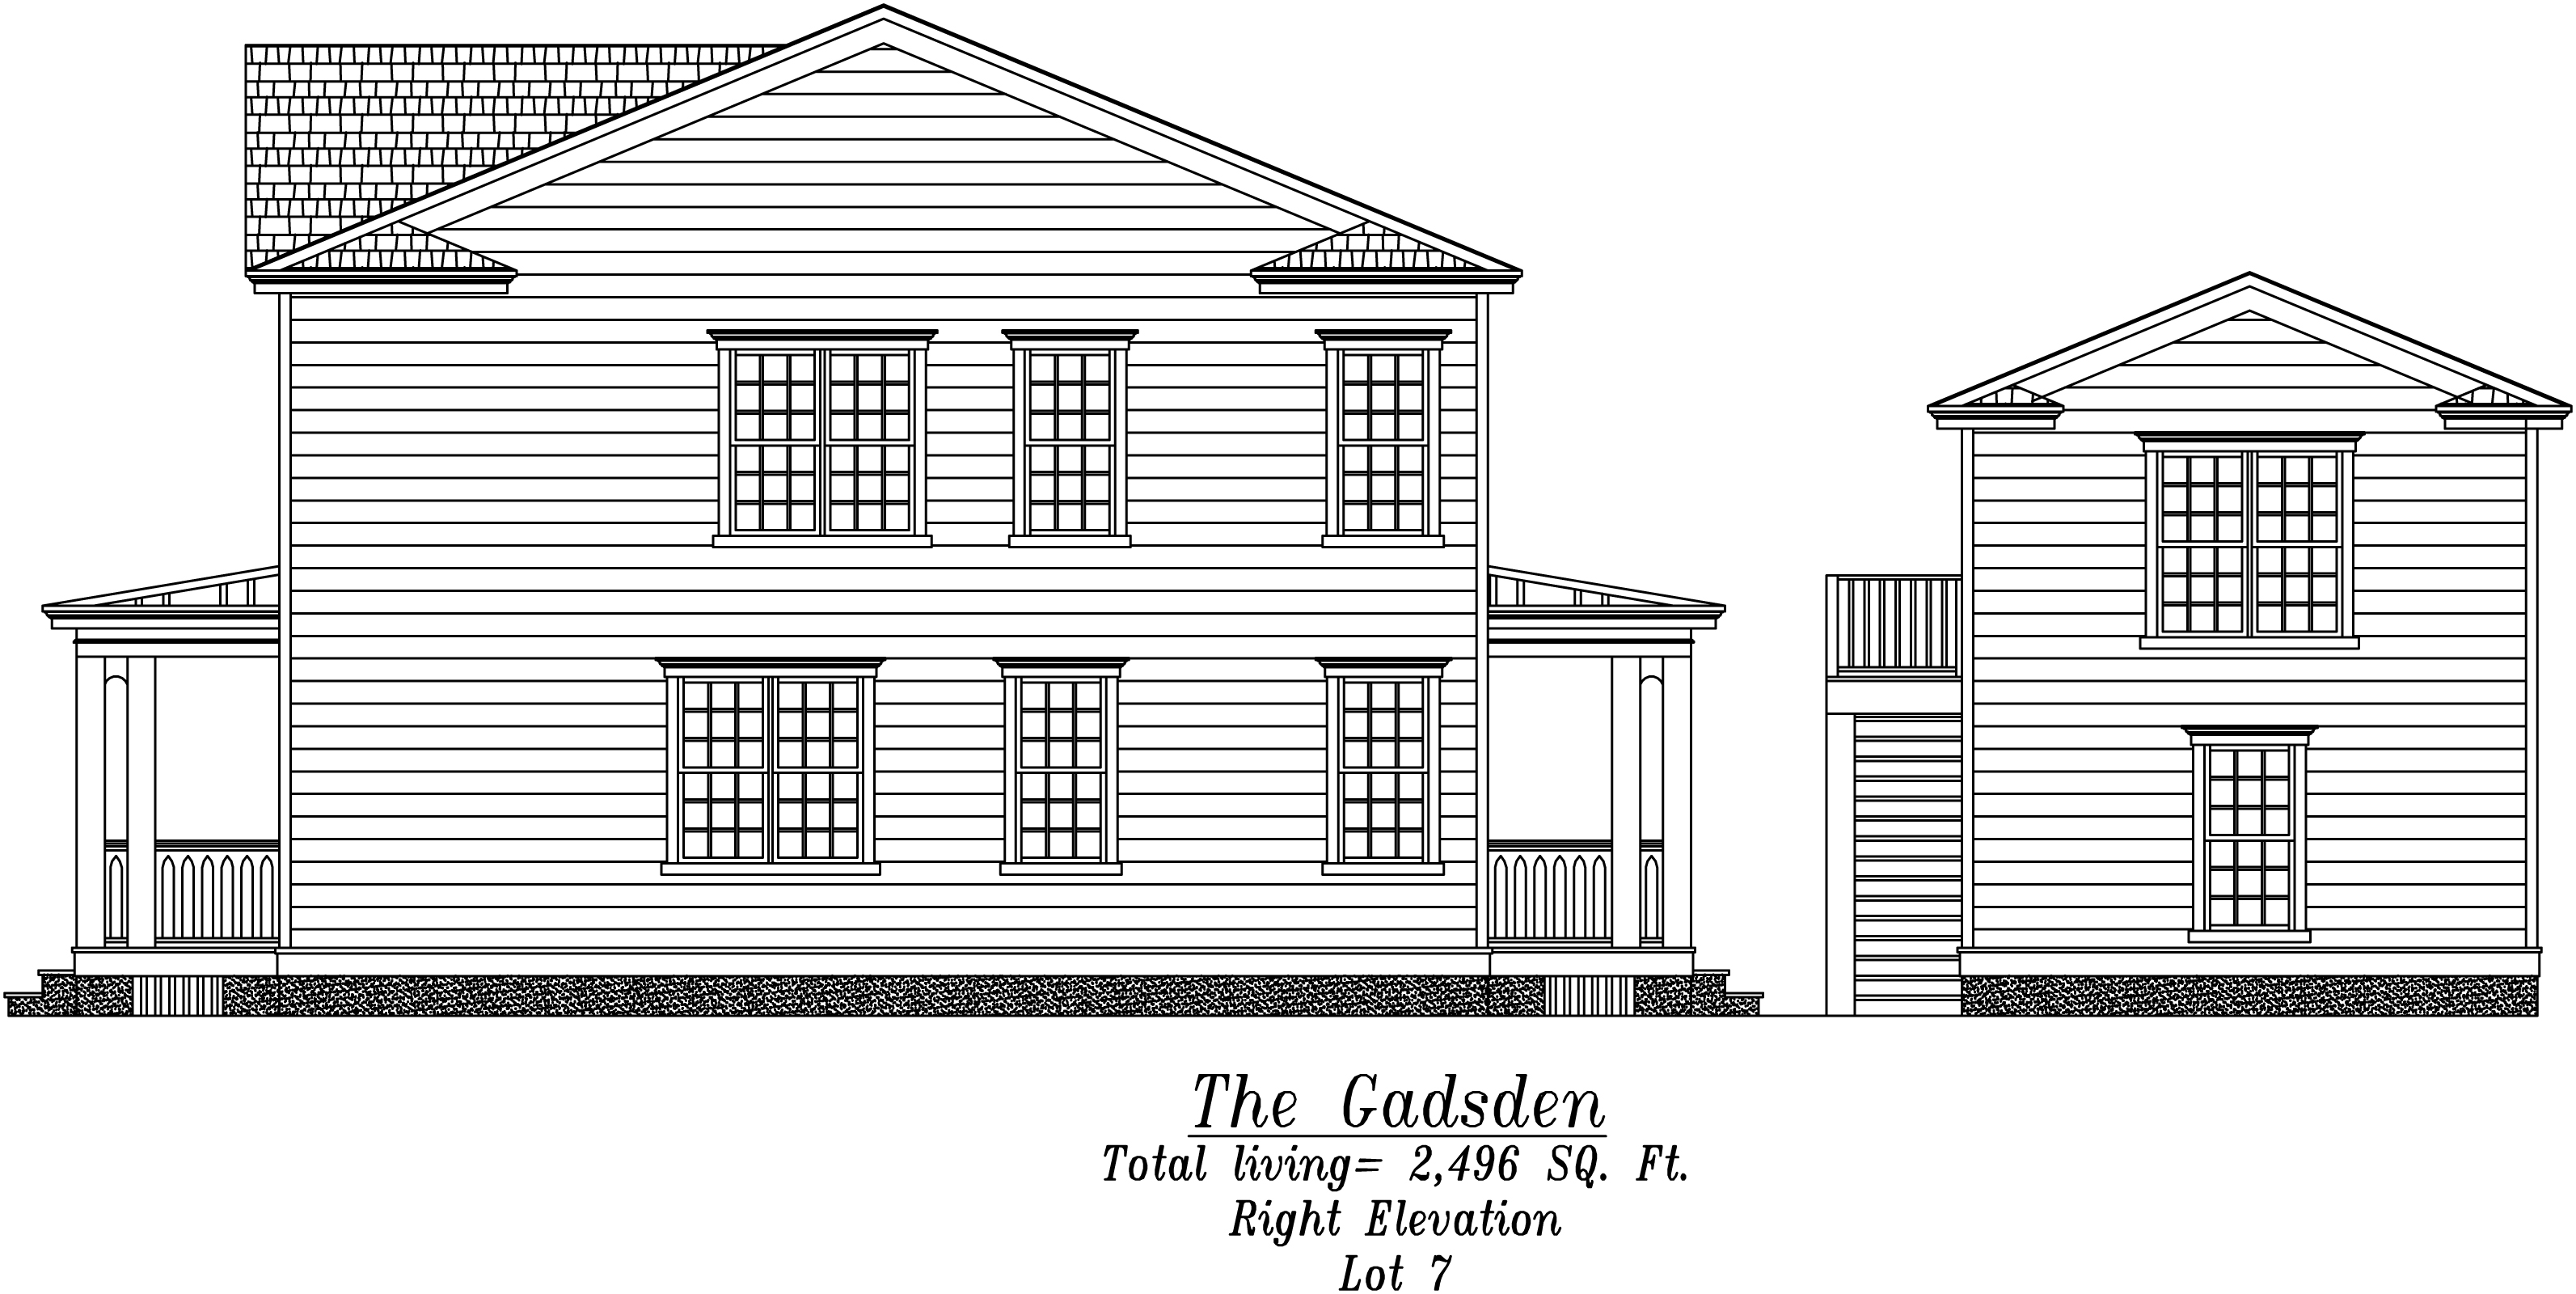 Gadsden Right Elevation